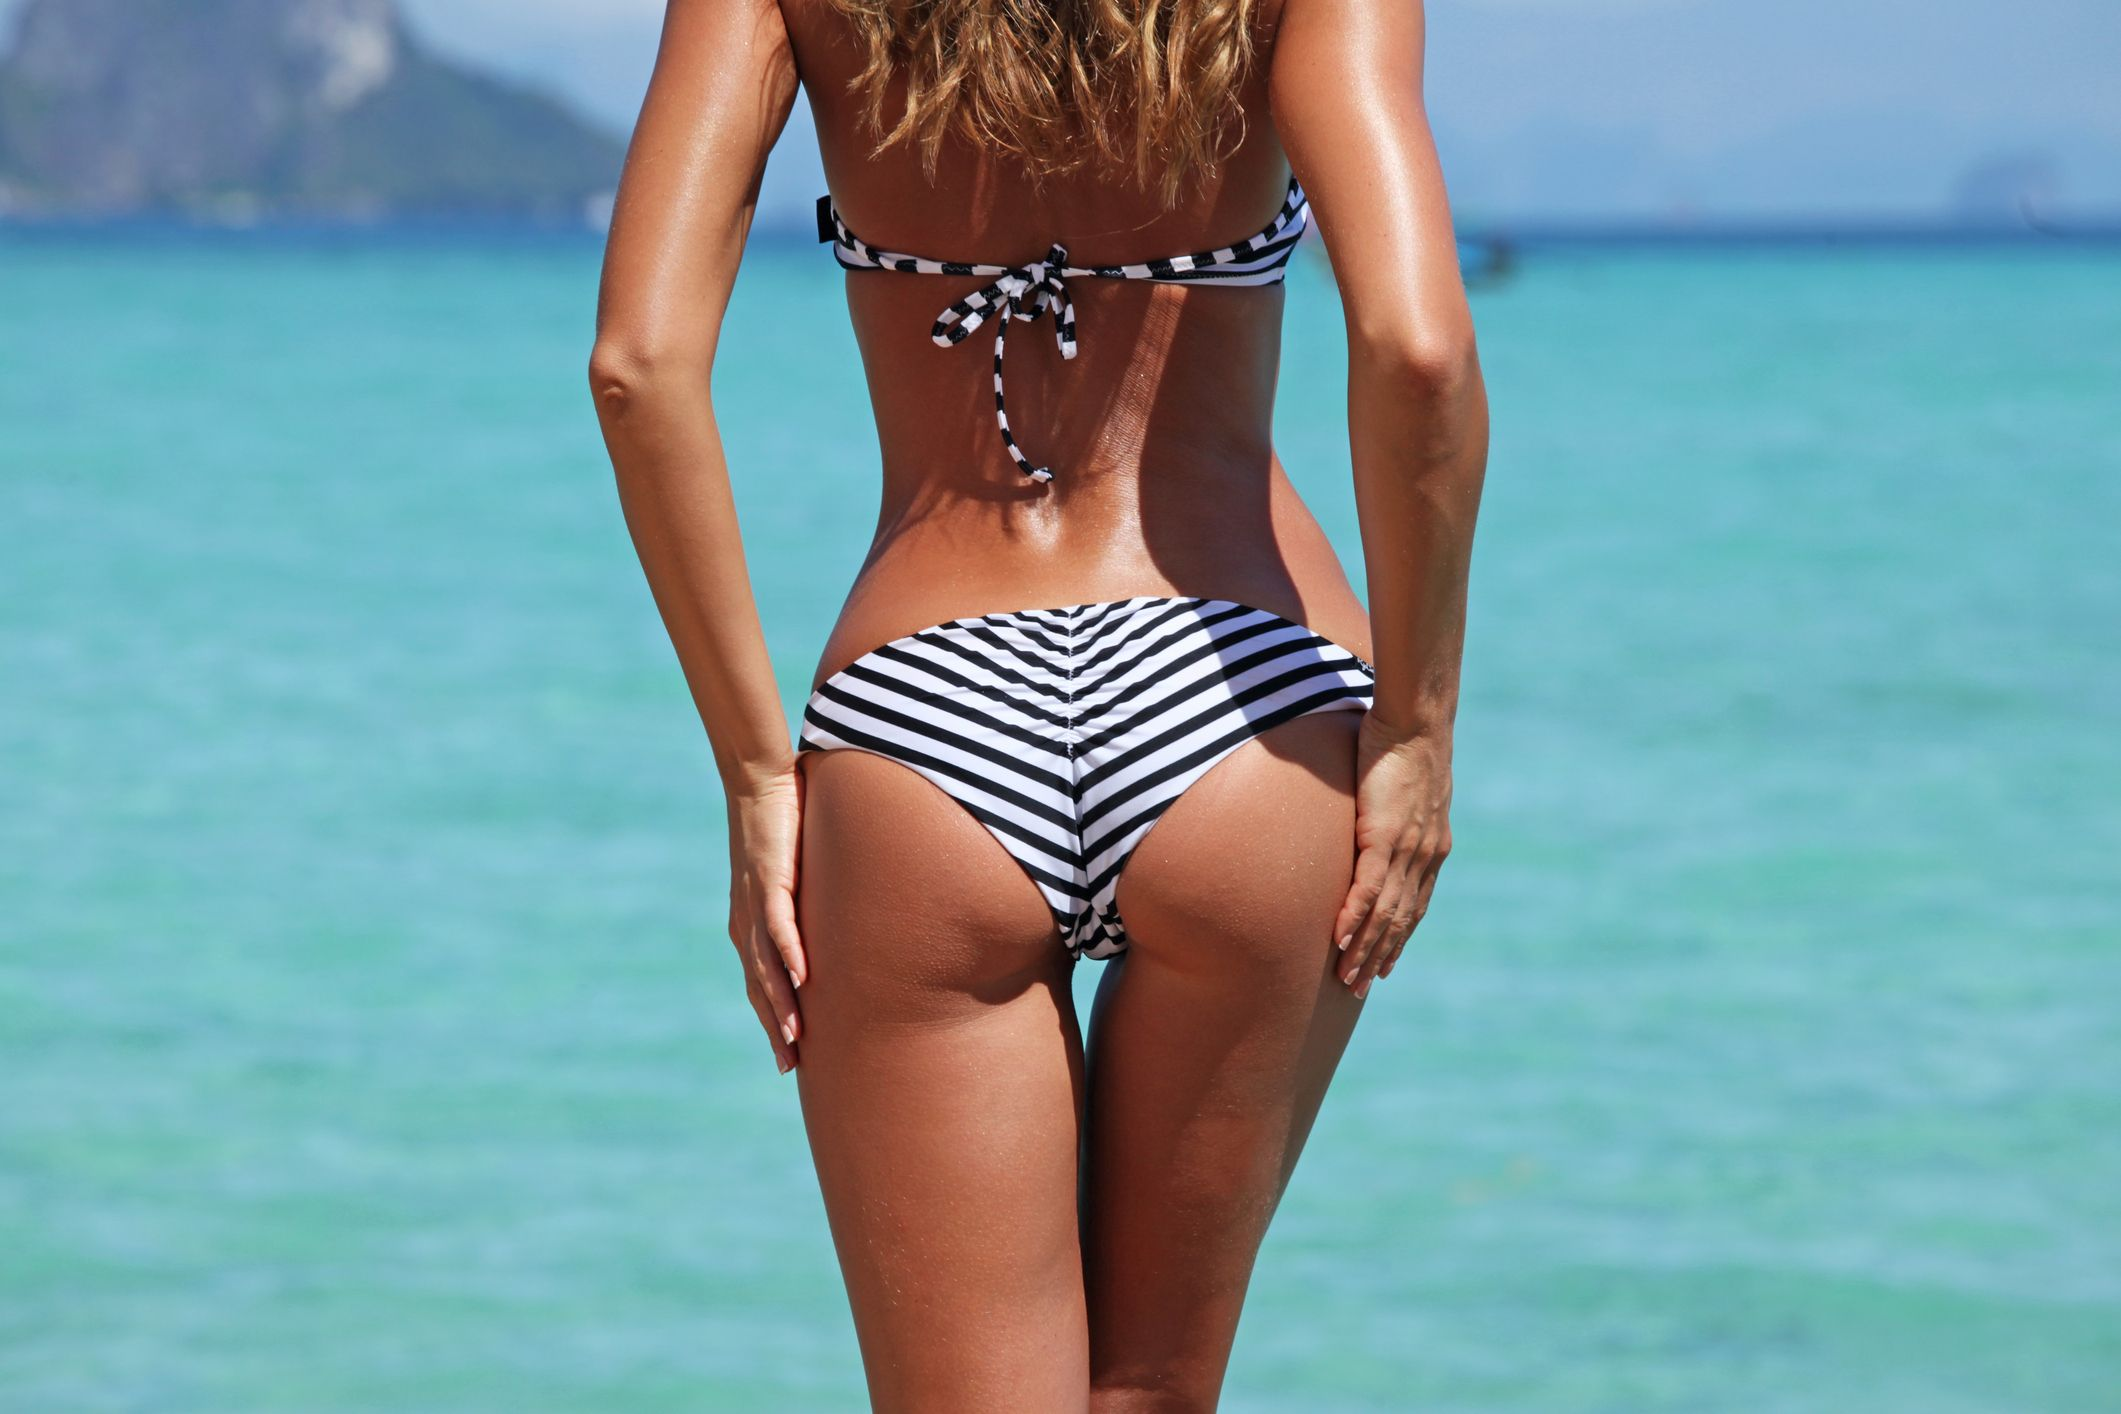 The New Trend of Thigh Gap: An Obsession or a Fitness Rule